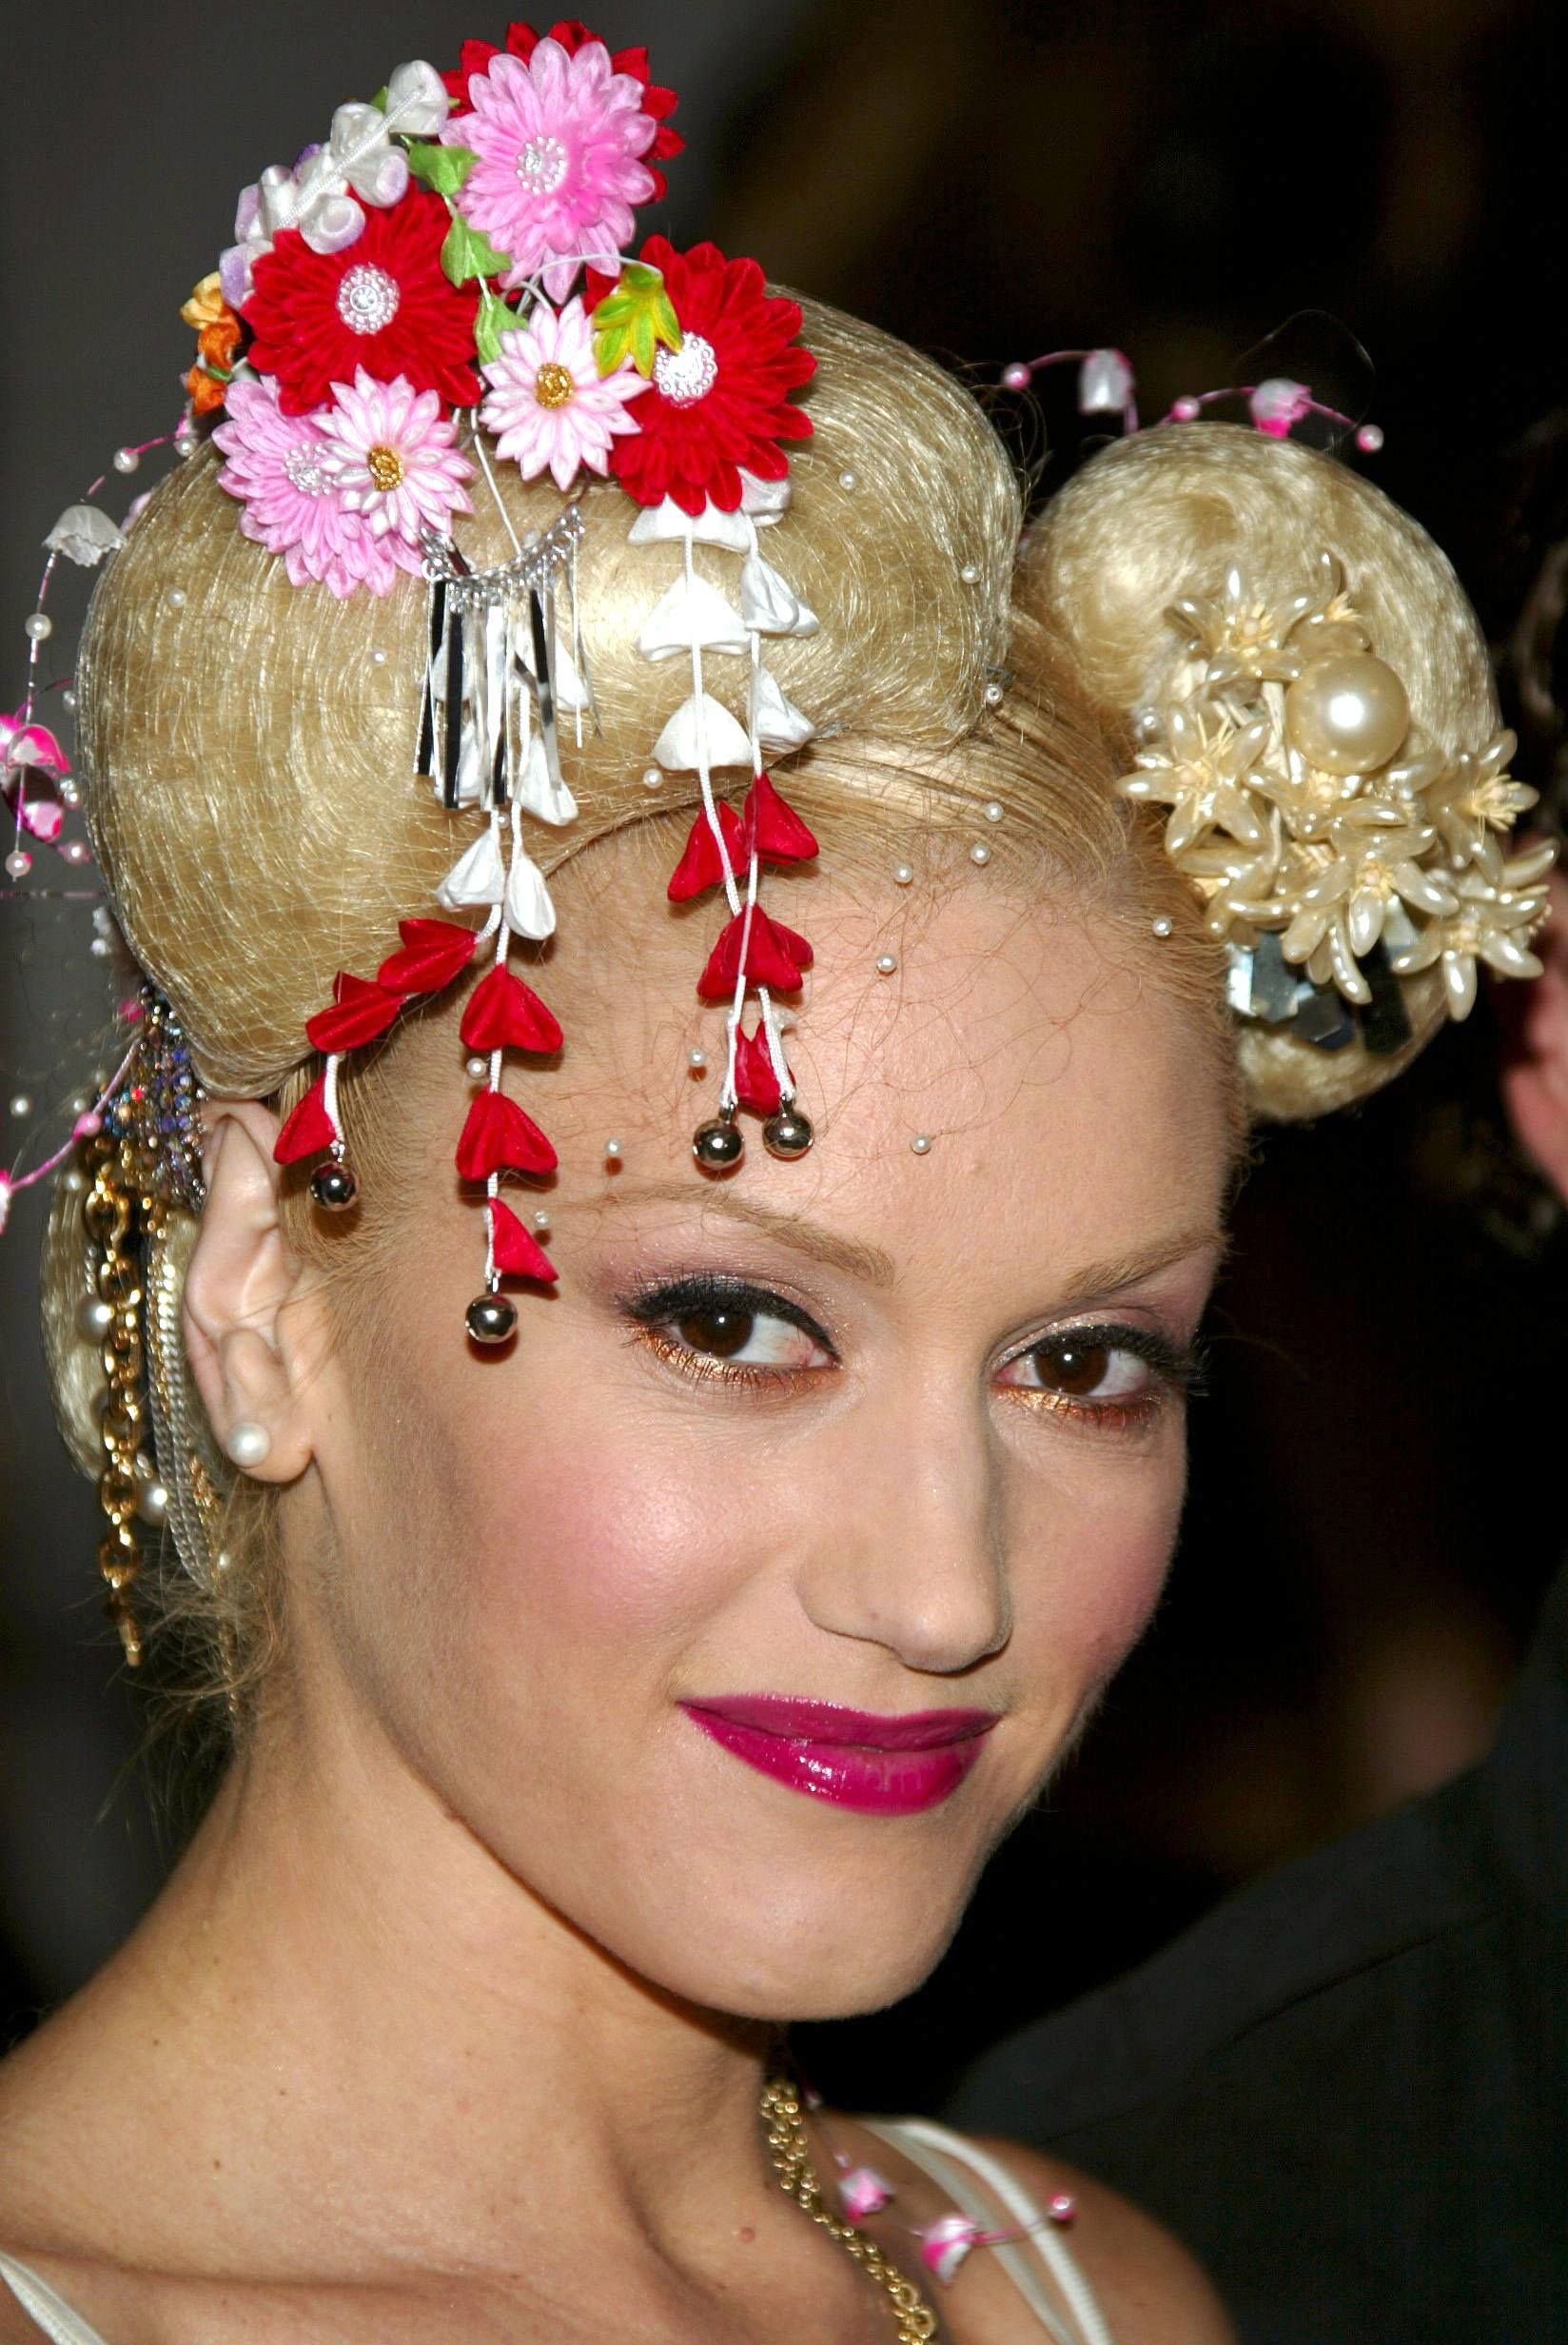 Mane moments gwen stefanis hair highlights from then to now gwen stefani platinum blonde hair in space buns with red accessories sciox Images